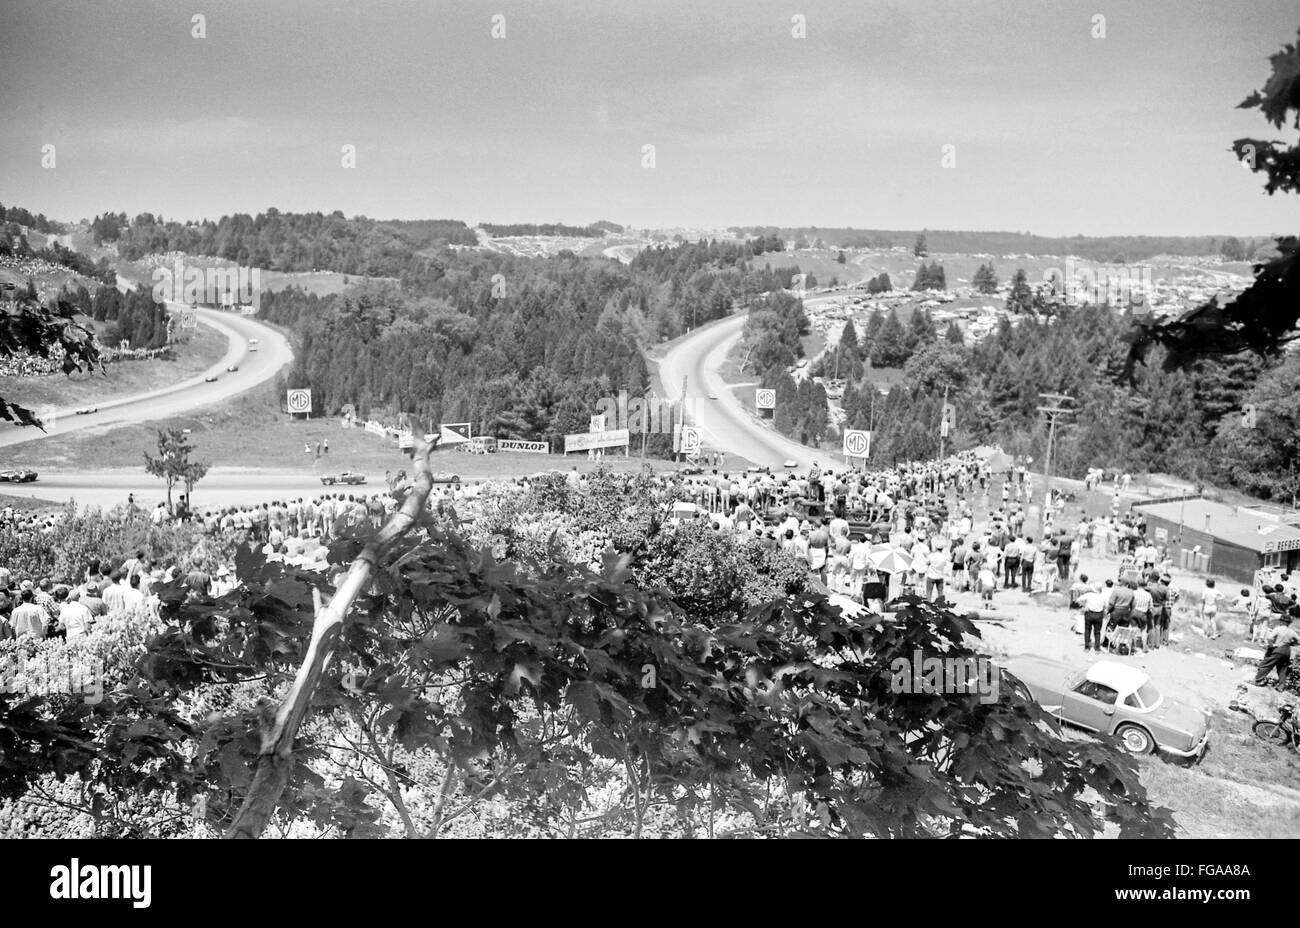 The beginning of Motorsport and formal one and Grand Prix racing in Canada at Mosport Race Track near Bownmanville, - Stock Image